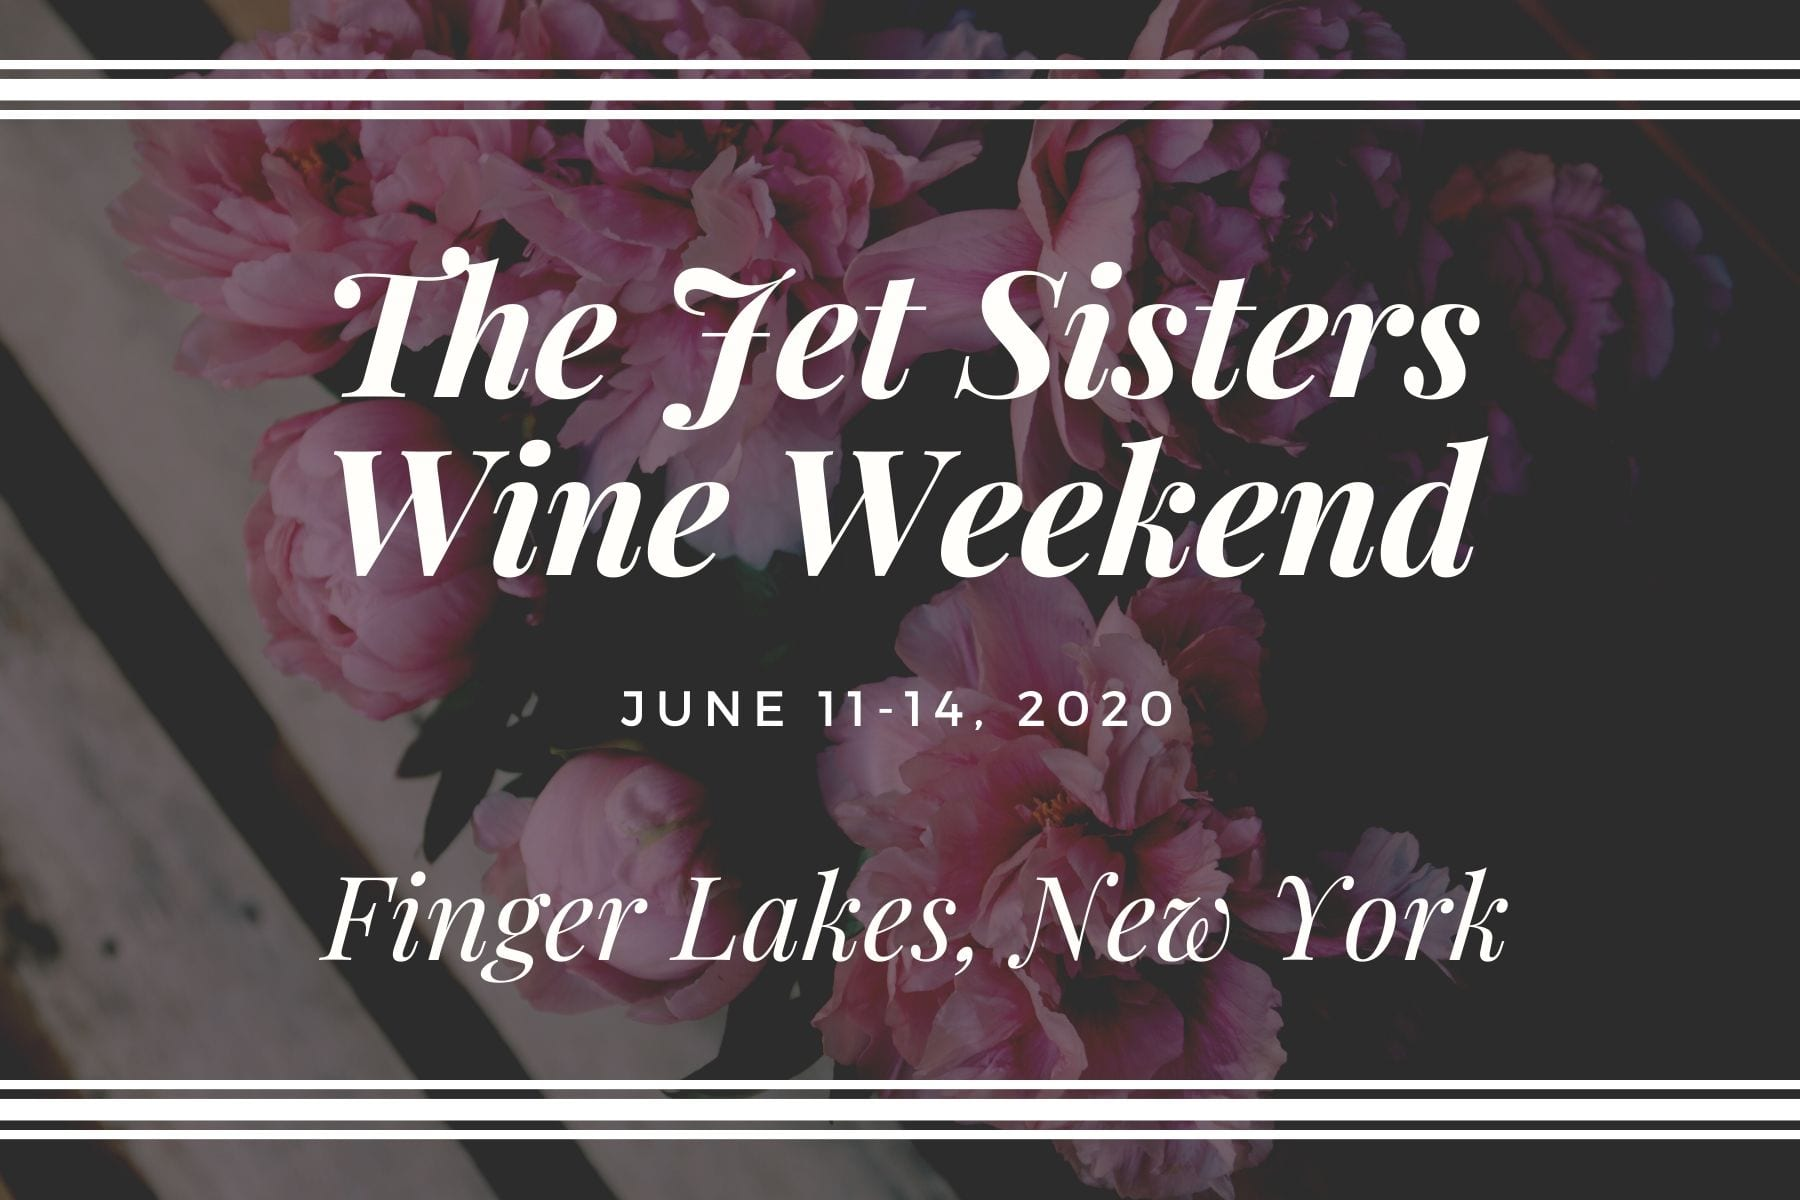 The Jet Sisters Finger Lakes Group Trip